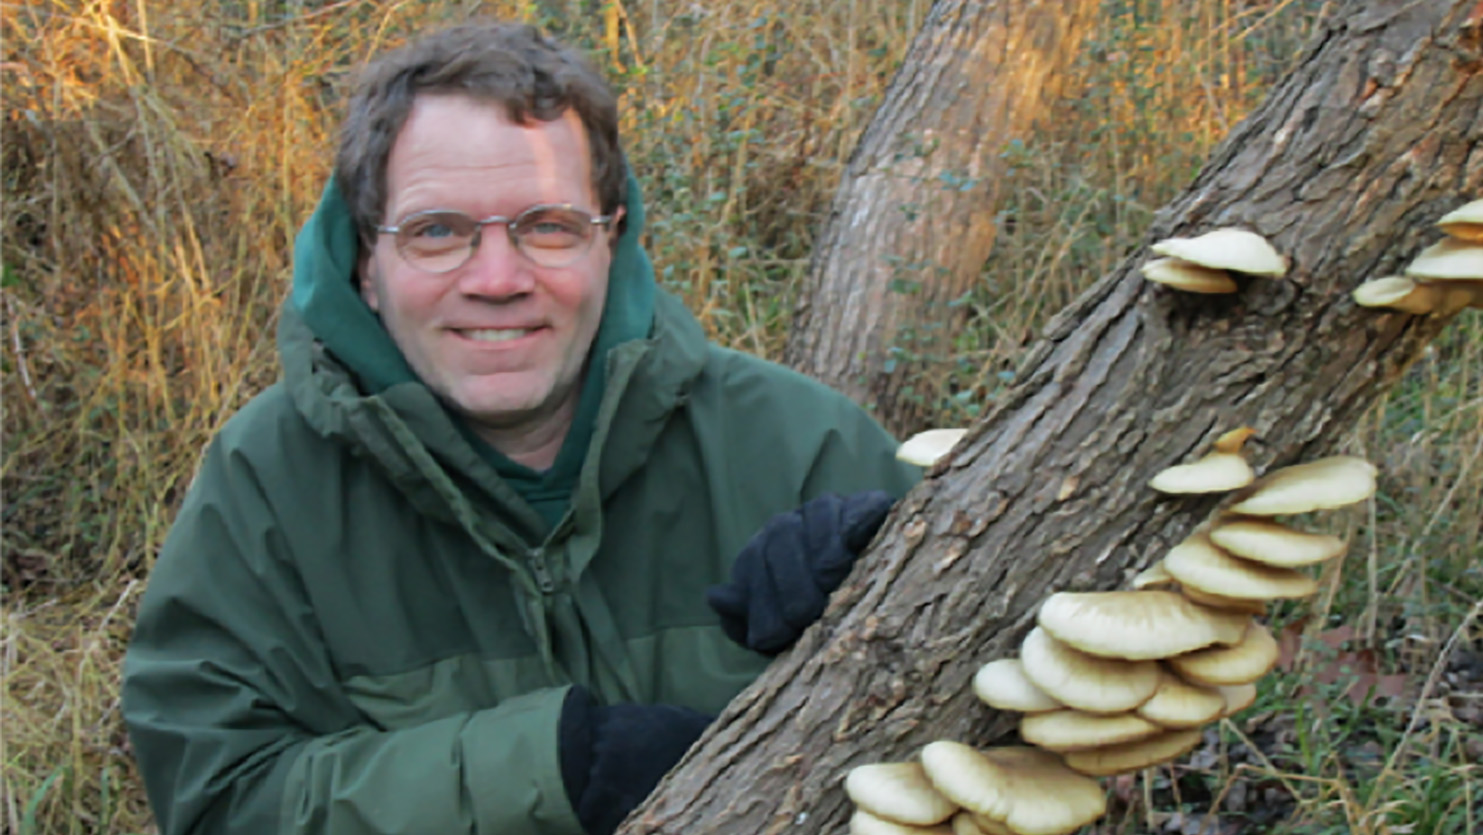 Man holding log with fungi